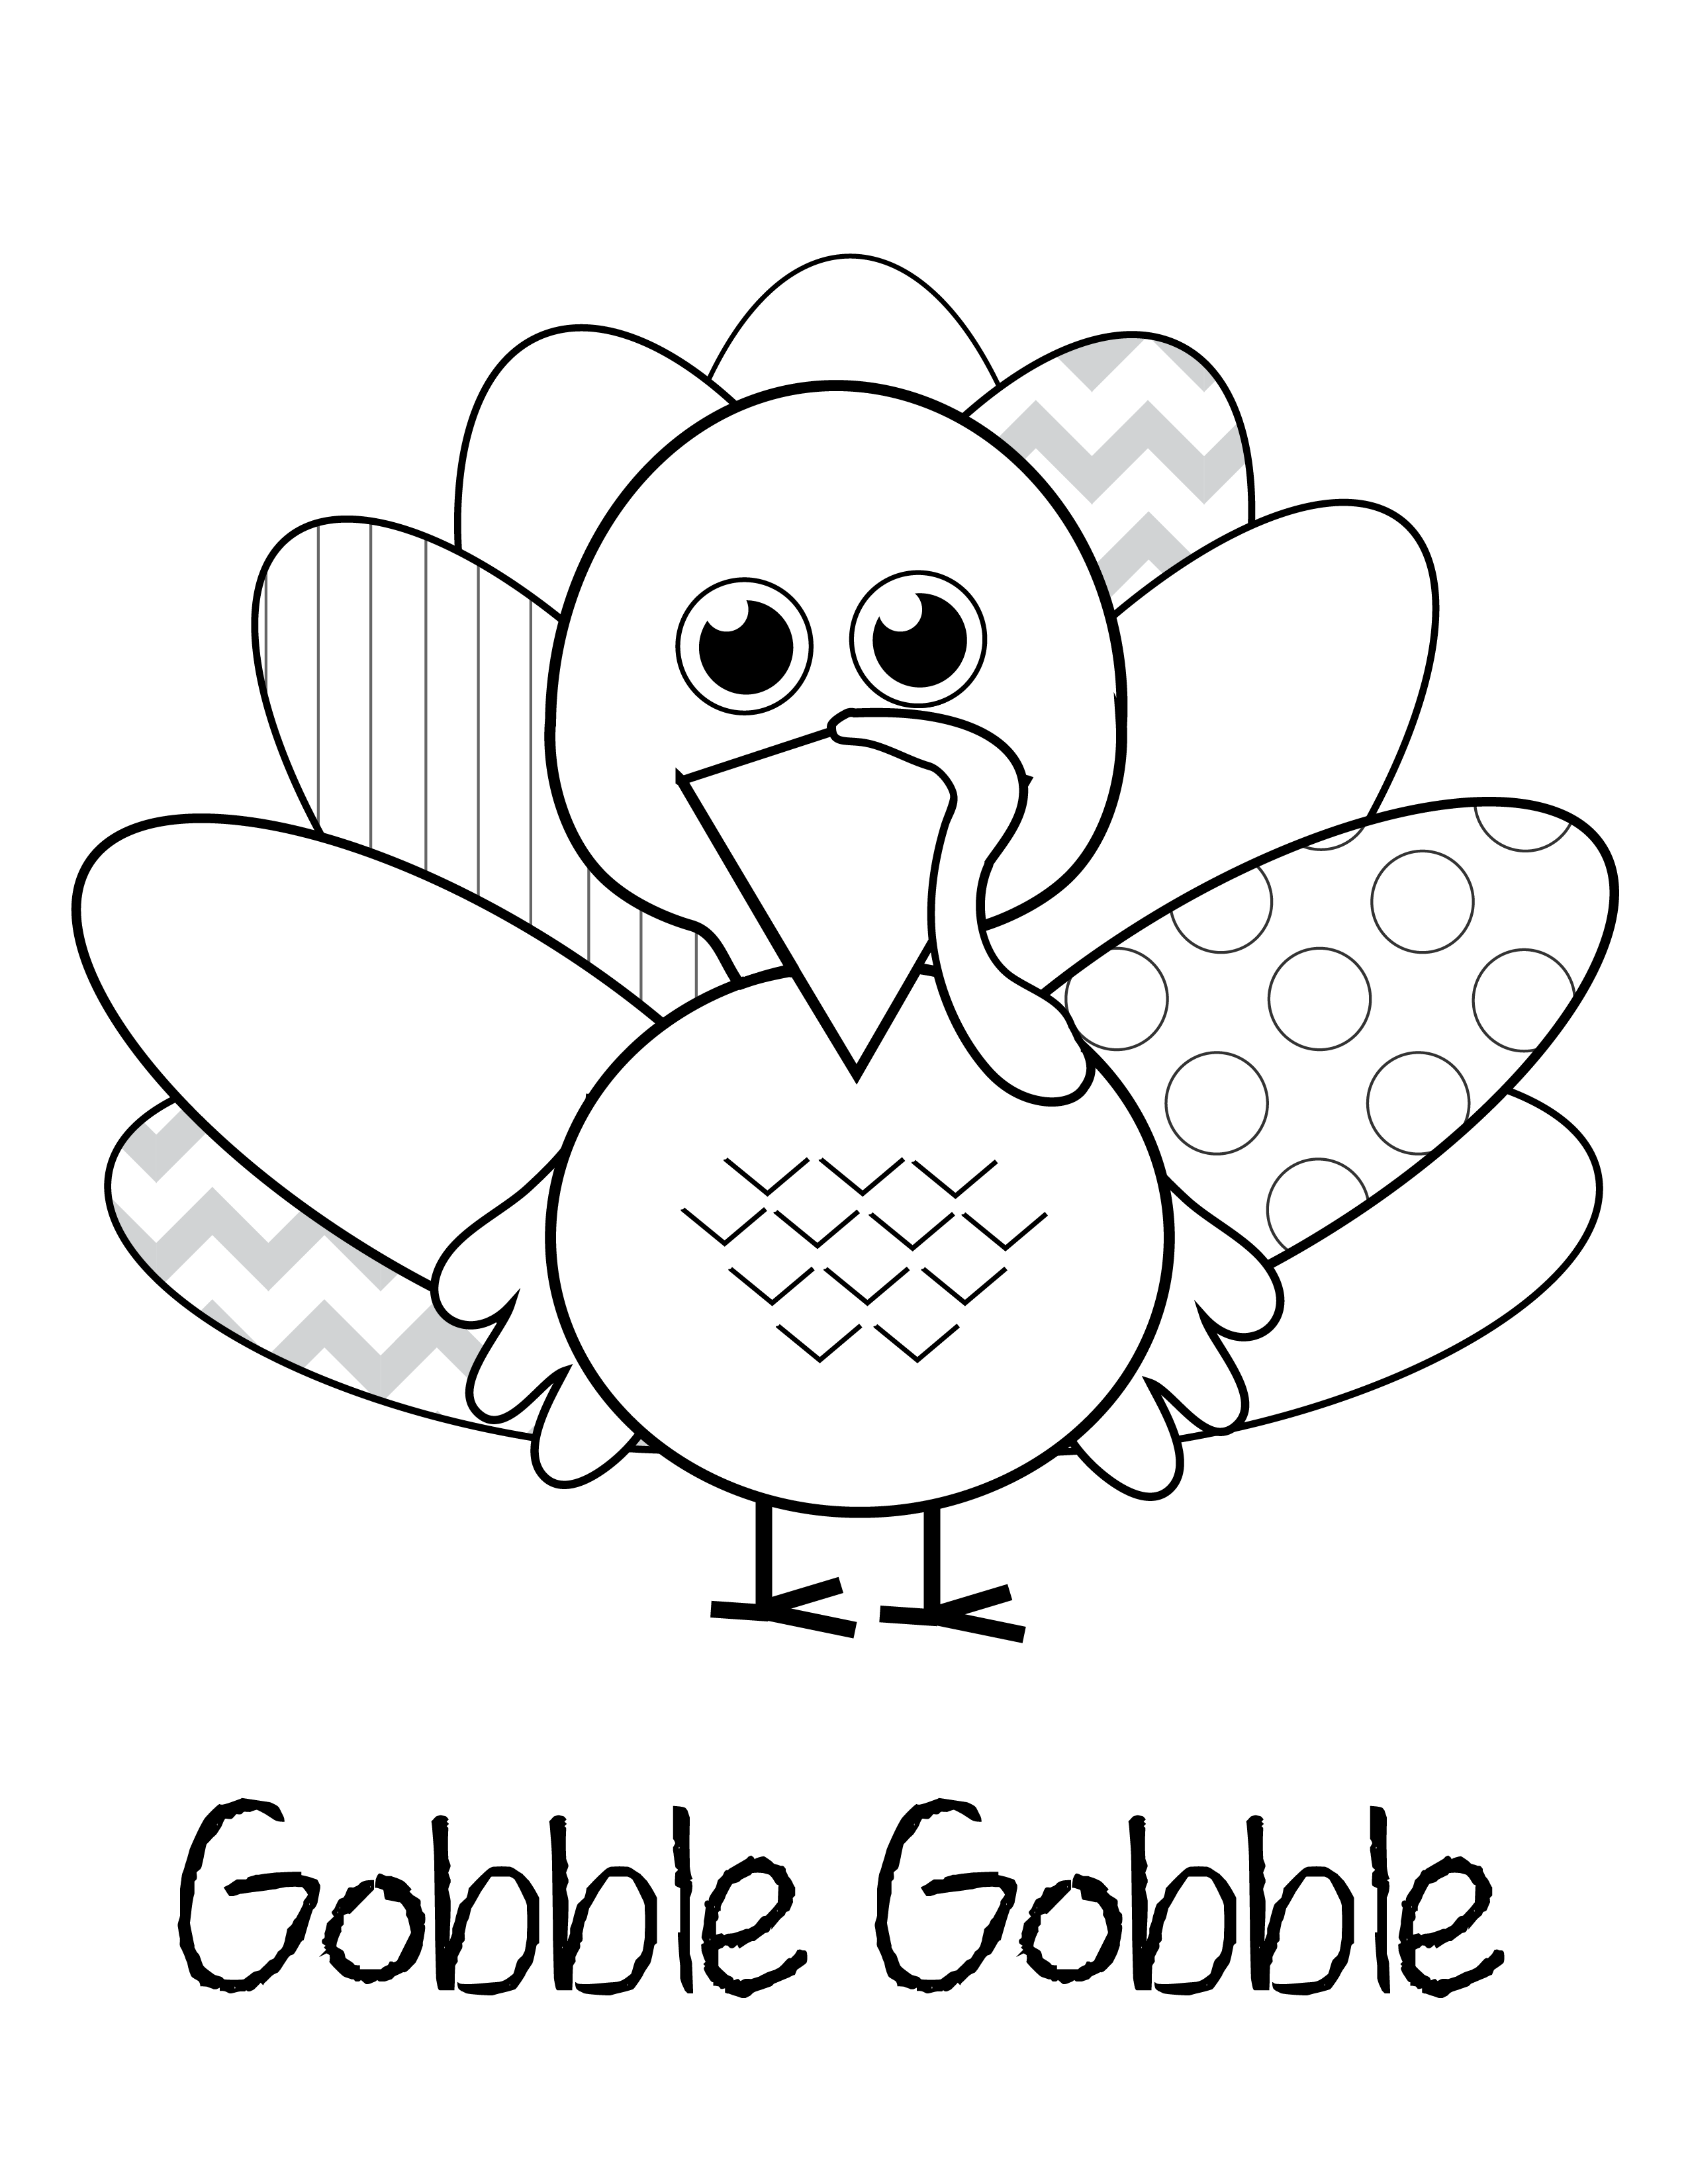 free thanksgiving printables | Cutouts | Pinterest | Free ...